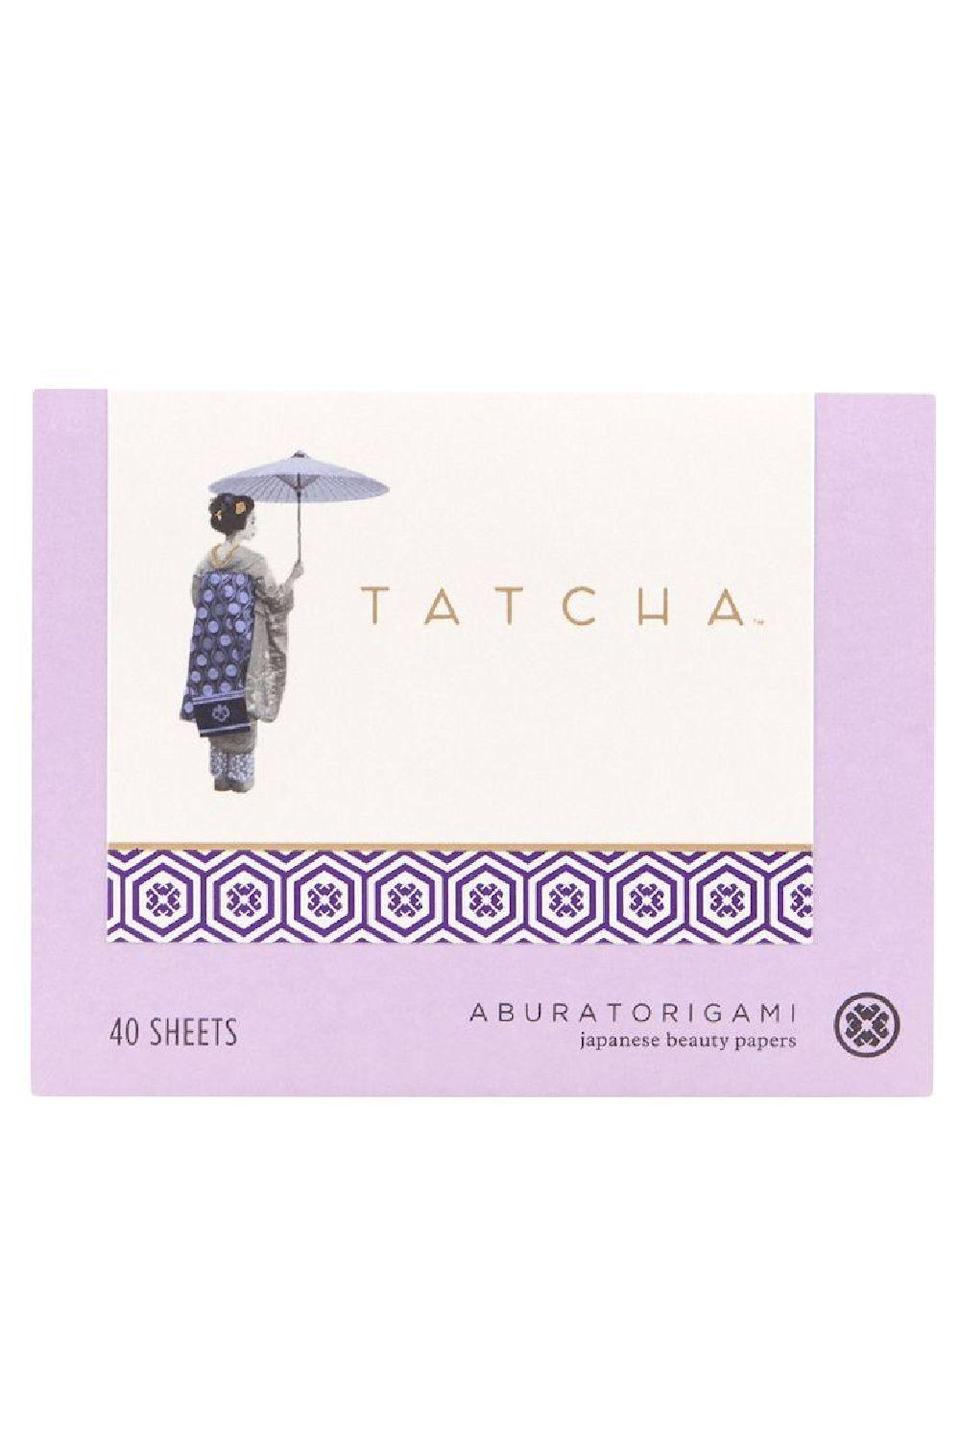 """<p><strong>Tatcha</strong></p><p>sephora.com</p><p><strong>$12.00</strong></p><p><a href=""""https://go.redirectingat.com?id=74968X1596630&url=https%3A%2F%2Fwww.sephora.com%2Fproduct%2Ftatcha-aburatorigami-japanese-blotting-papers-P460746&sref=https%3A%2F%2Fwww.cosmopolitan.com%2Fstyle-beauty%2Fbeauty%2Fg35020776%2Fbest-oil-blotting-paper-sheets%2F"""" rel=""""nofollow noopener"""" target=""""_blank"""" data-ylk=""""slk:Shop Now"""" class=""""link rapid-noclick-resp"""">Shop Now</a></p><p>Before you use the back of your hand or your dirty fingers to try to dab away excess oil, reach for this oil blotting paper instead. Made with absorbent abaca leaf and gold flakes, these sheets <strong>remove shine without <a href=""""https://www.cosmopolitan.com/style-beauty/beauty/g19620718/best-makeup-remover/"""" rel=""""nofollow noopener"""" target=""""_blank"""" data-ylk=""""slk:removing your makeup"""" class=""""link rapid-noclick-resp"""">removing your makeup</a> underneath</strong>.</p>"""